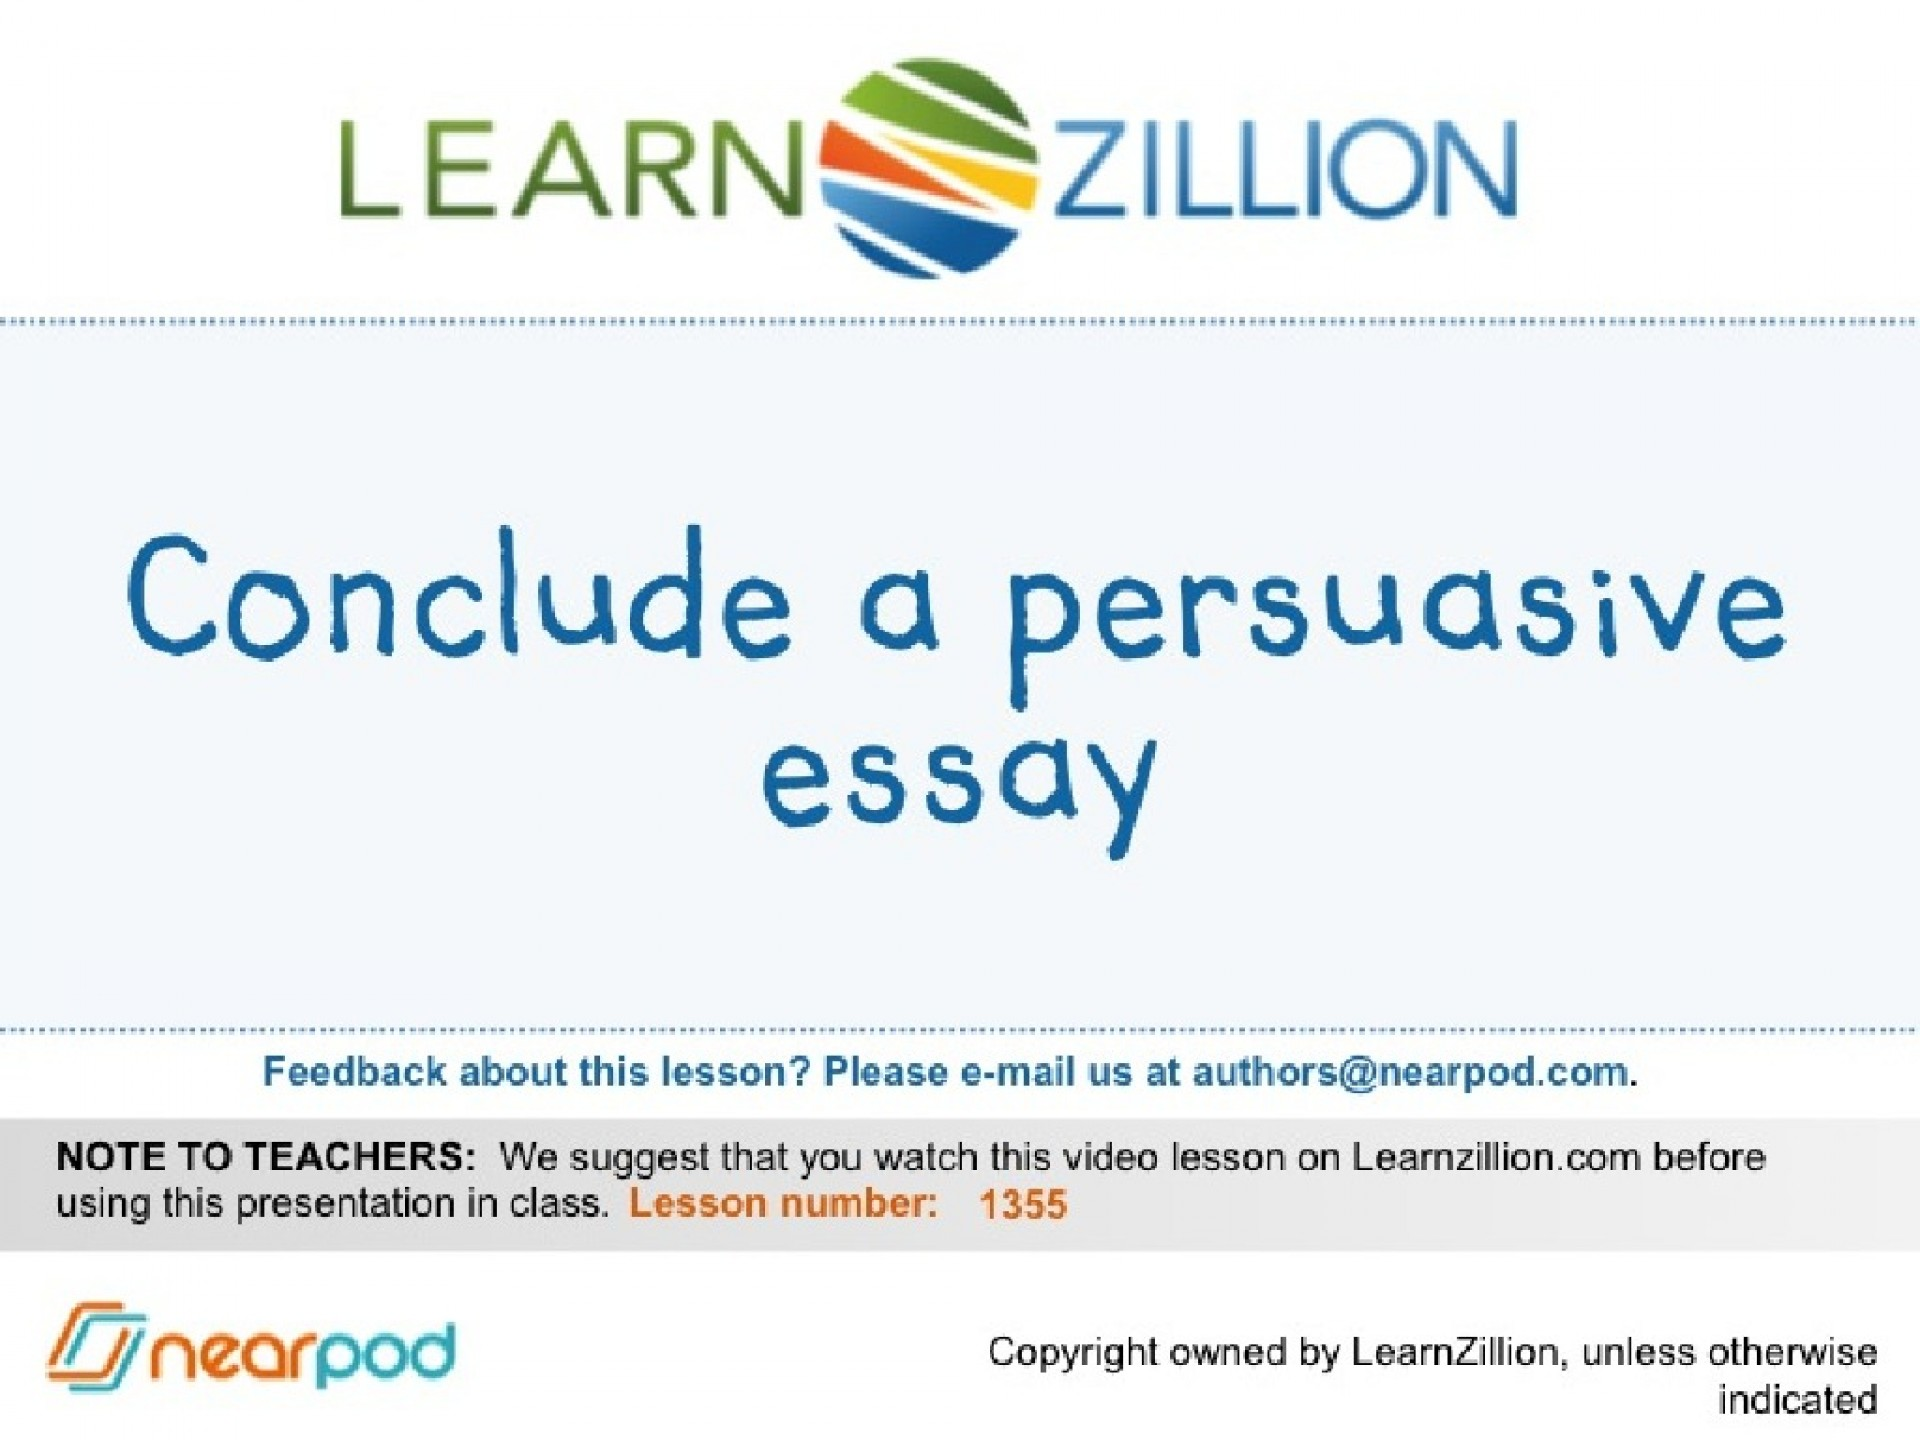 007 Conclusion To Persuasive Essay Iconflashawsaccesskeyidakiainyagm2ywp2owqbaexpires2147483647signaturebvnb2b2ce0hpp5ysyrqscd3n6n743d1386778019 Outstanding Good A Example The Strongest 1920